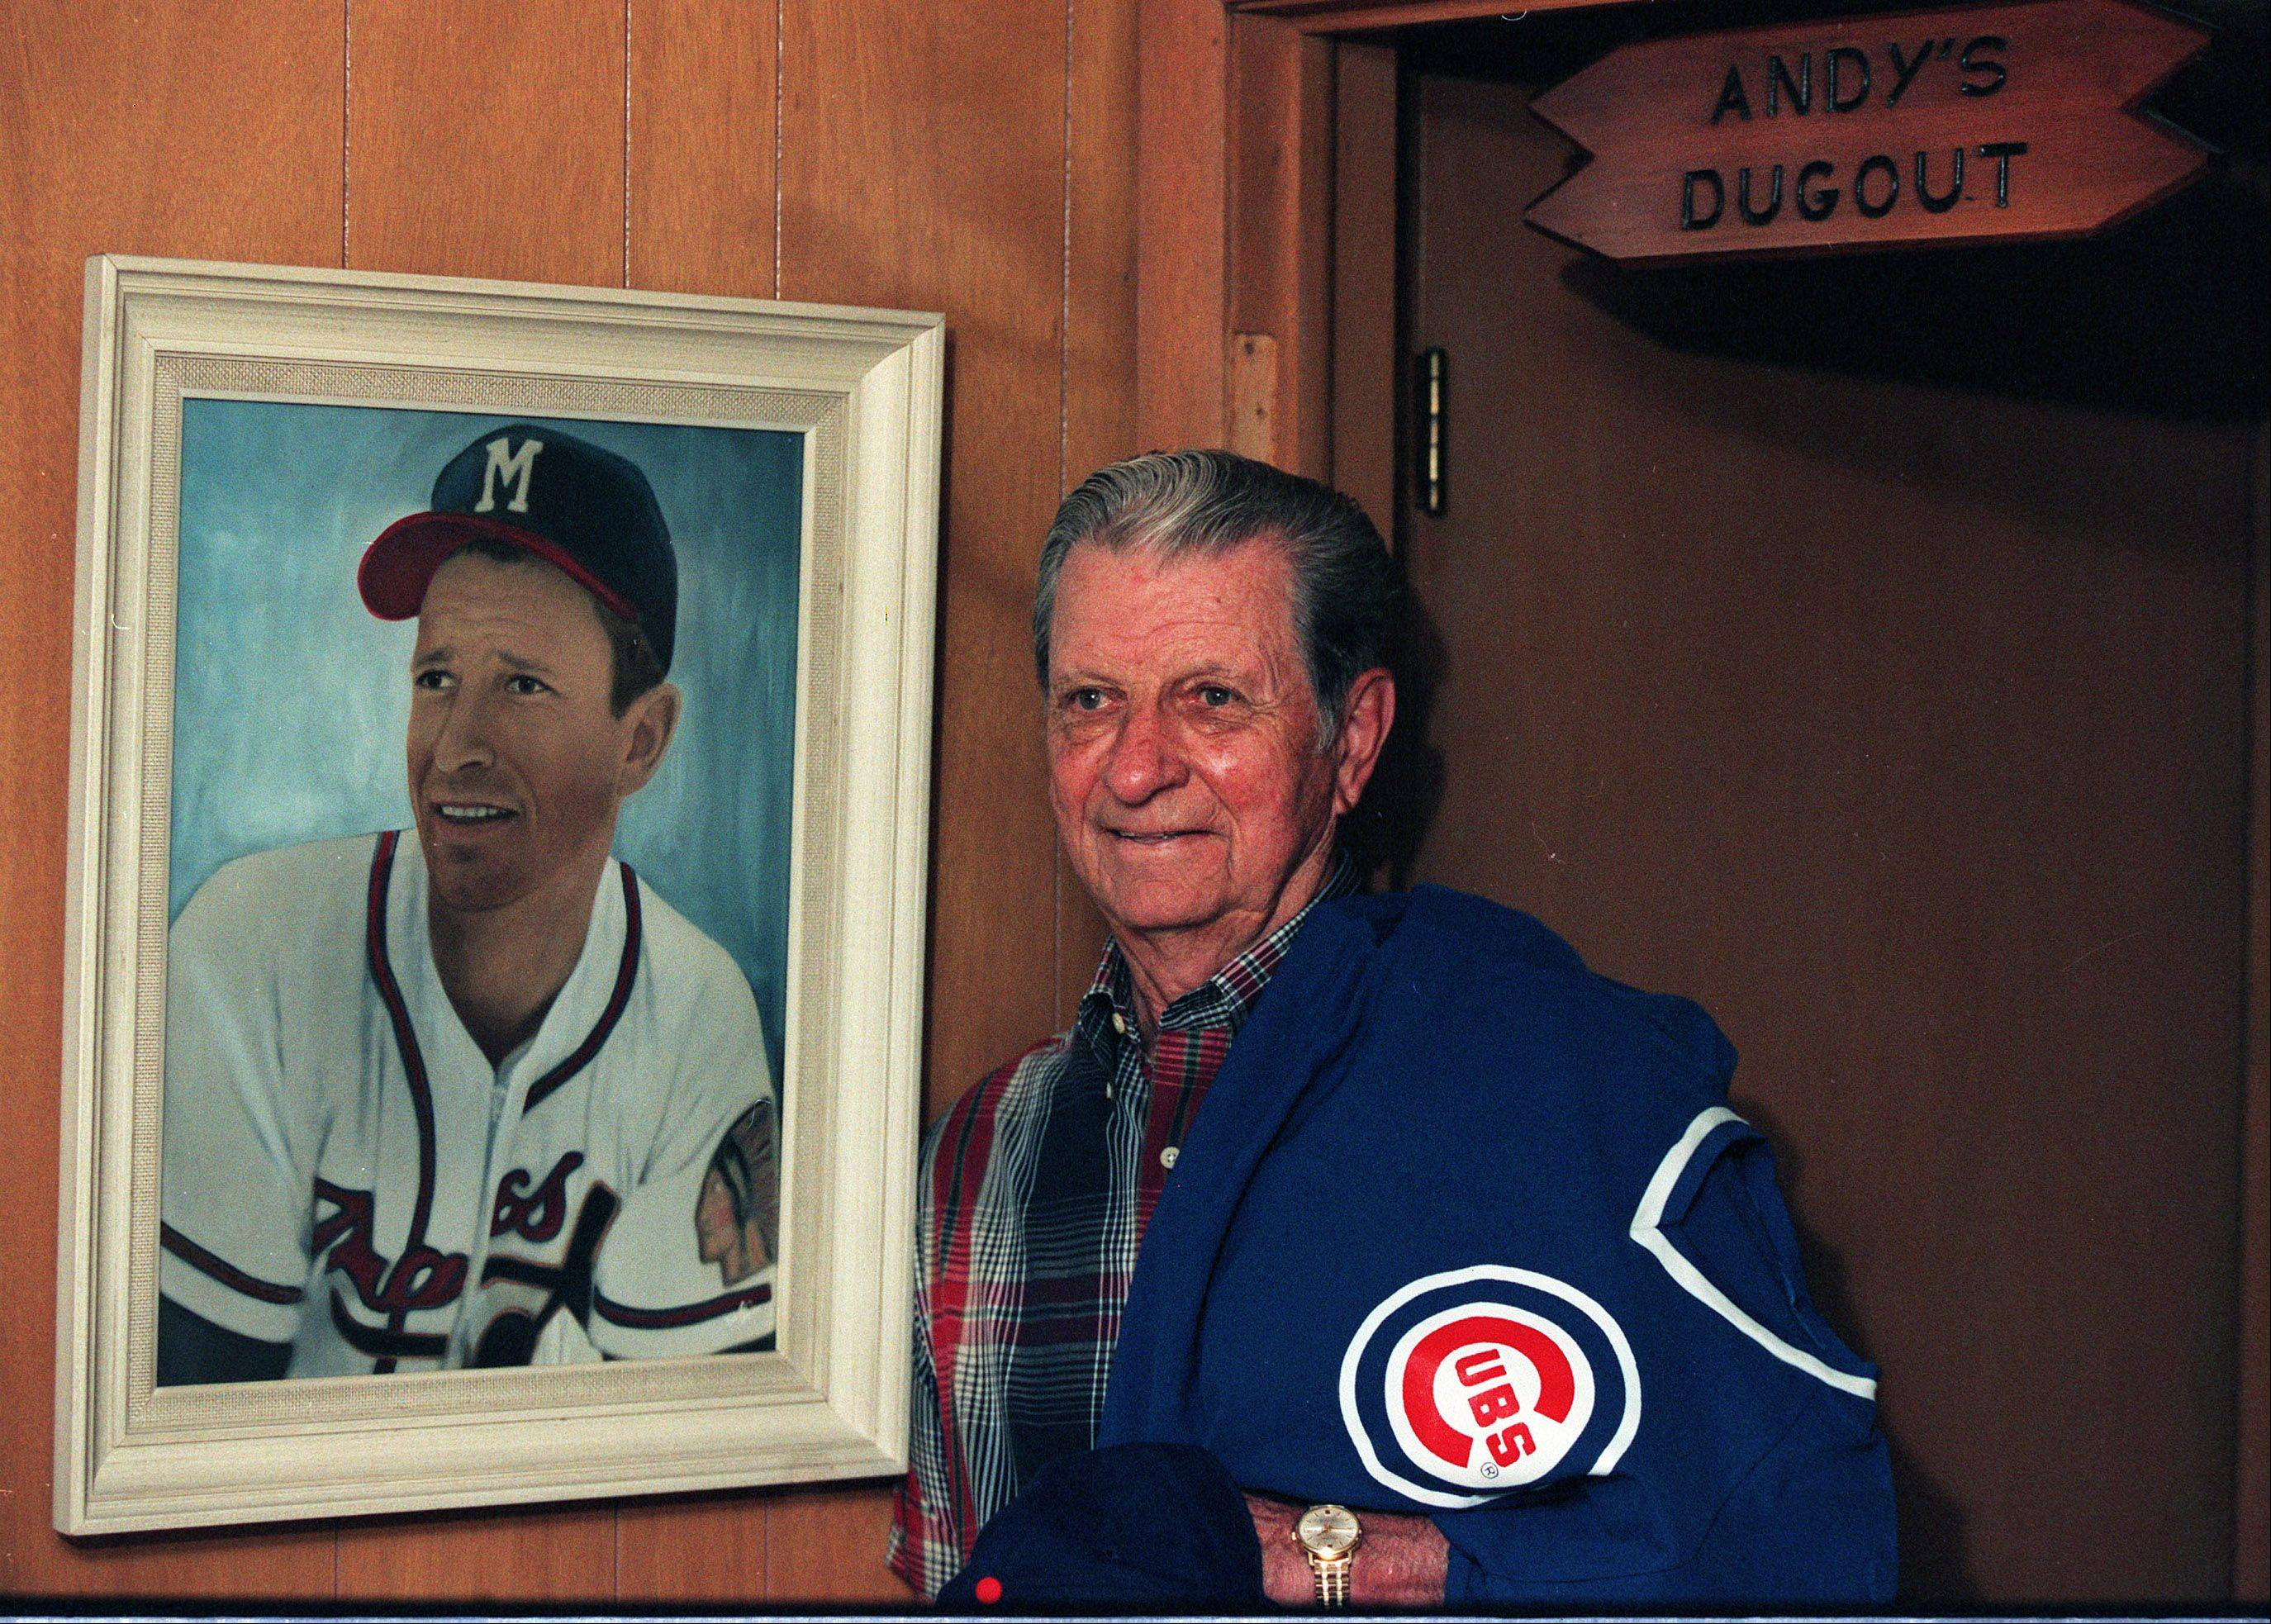 At his home in Mount Prospect, former Chicago Cub Andy Pafko poses with a portrait of him as a Milwaukee Brave.